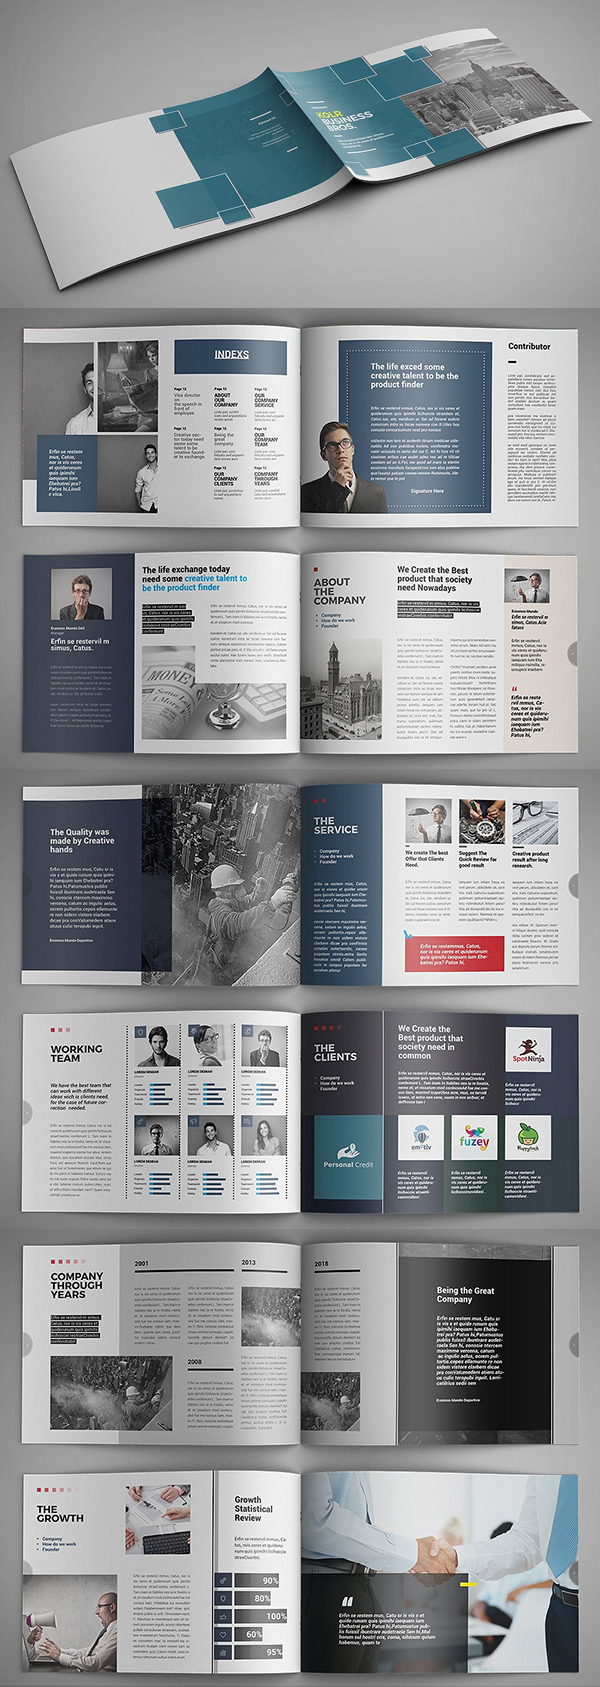 100 Professional Corporate Brochure Templates - 71